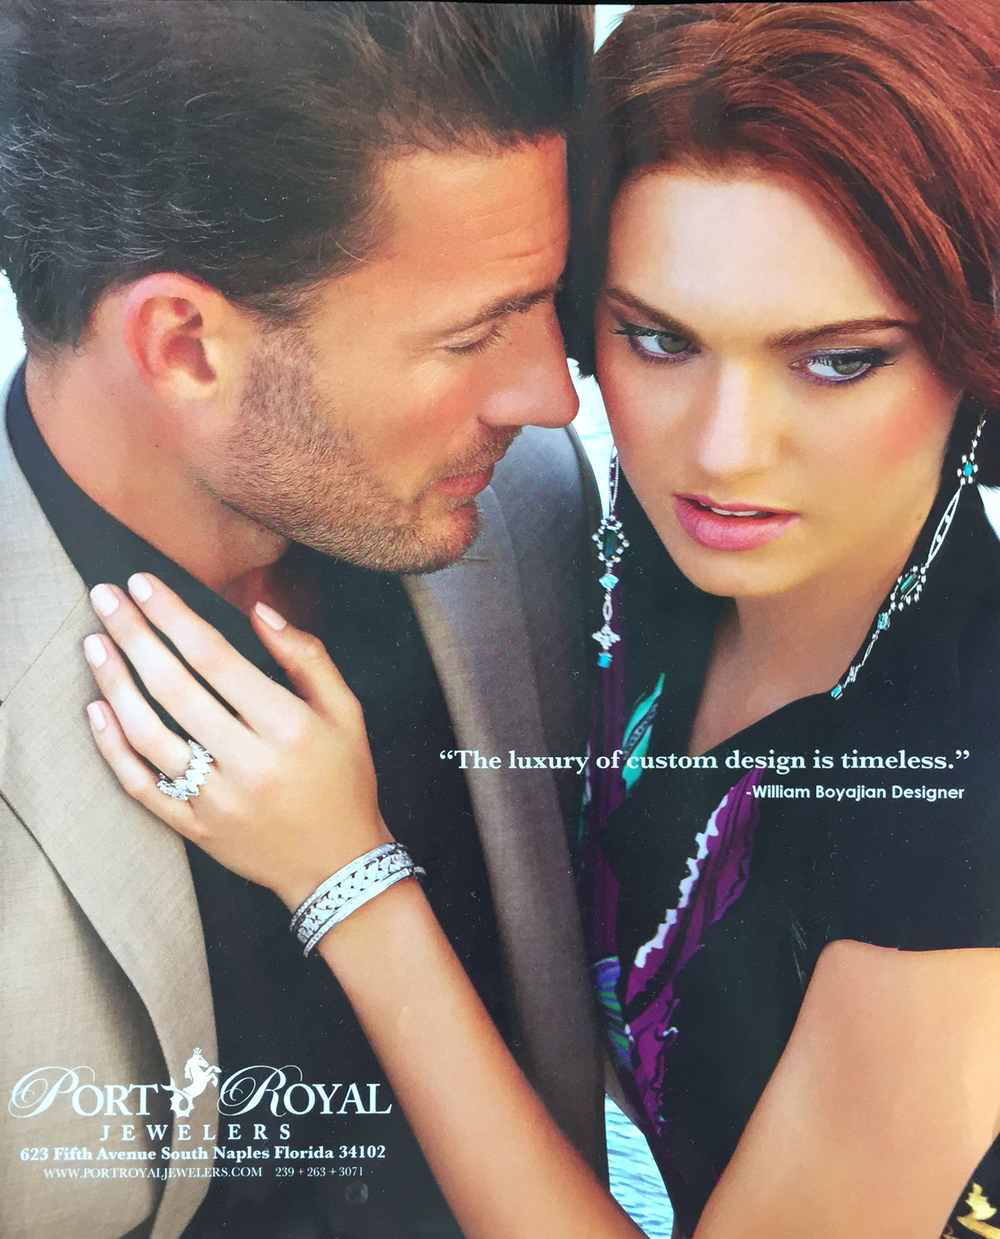 PORT_ROYAL_JEWELERS_ADVERTISING_CAMPAIGN_2014_PHOTOGRAPHED_BY_VANESSA_ROGERS